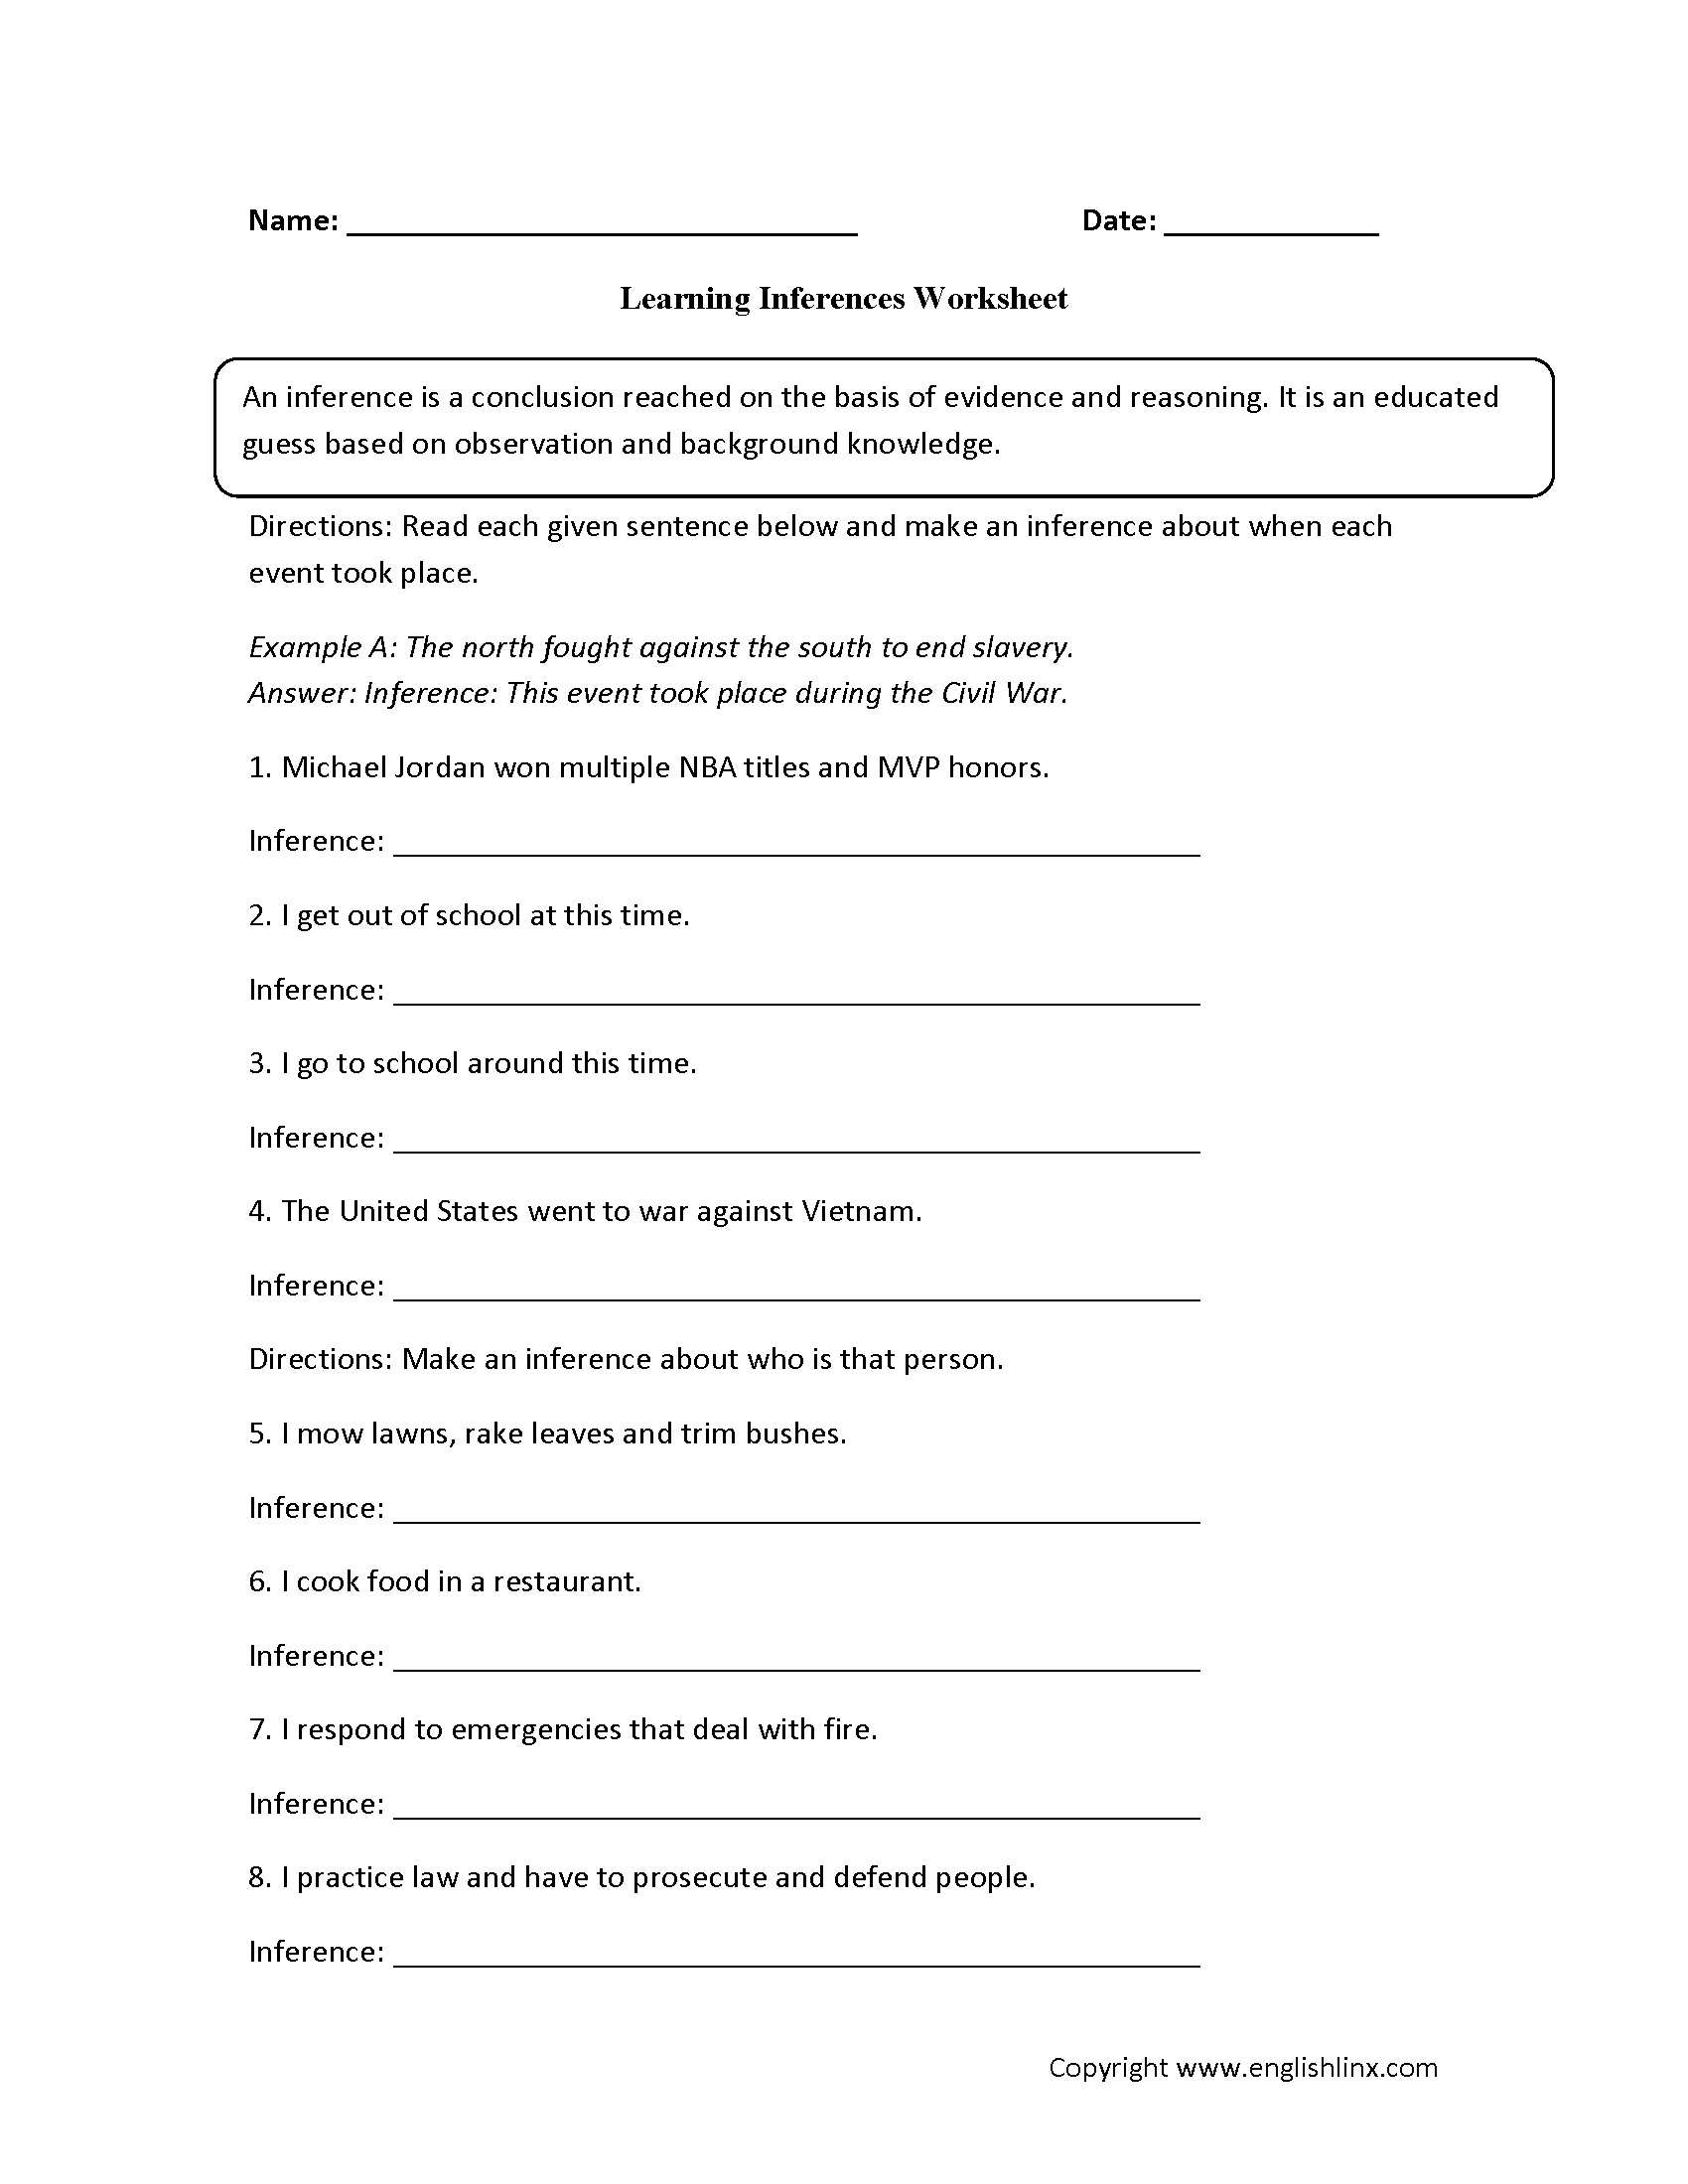 hight resolution of What Can I Eat? Worksheet - Free Esl Printable Worksheets Made By on Best  Worksheets Collection 9014